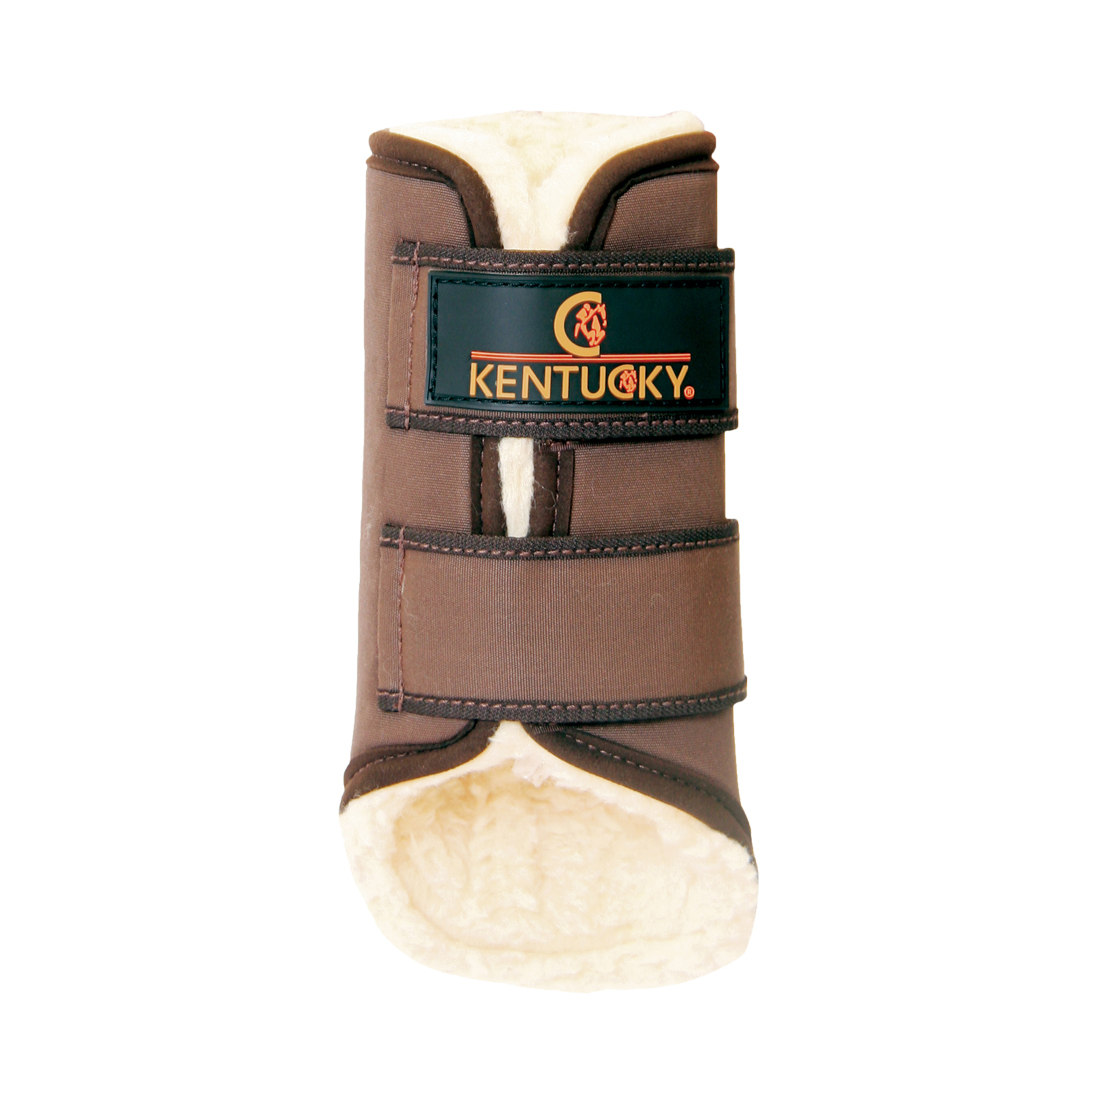 Kentucky Solimbra Turnout Boots Hind